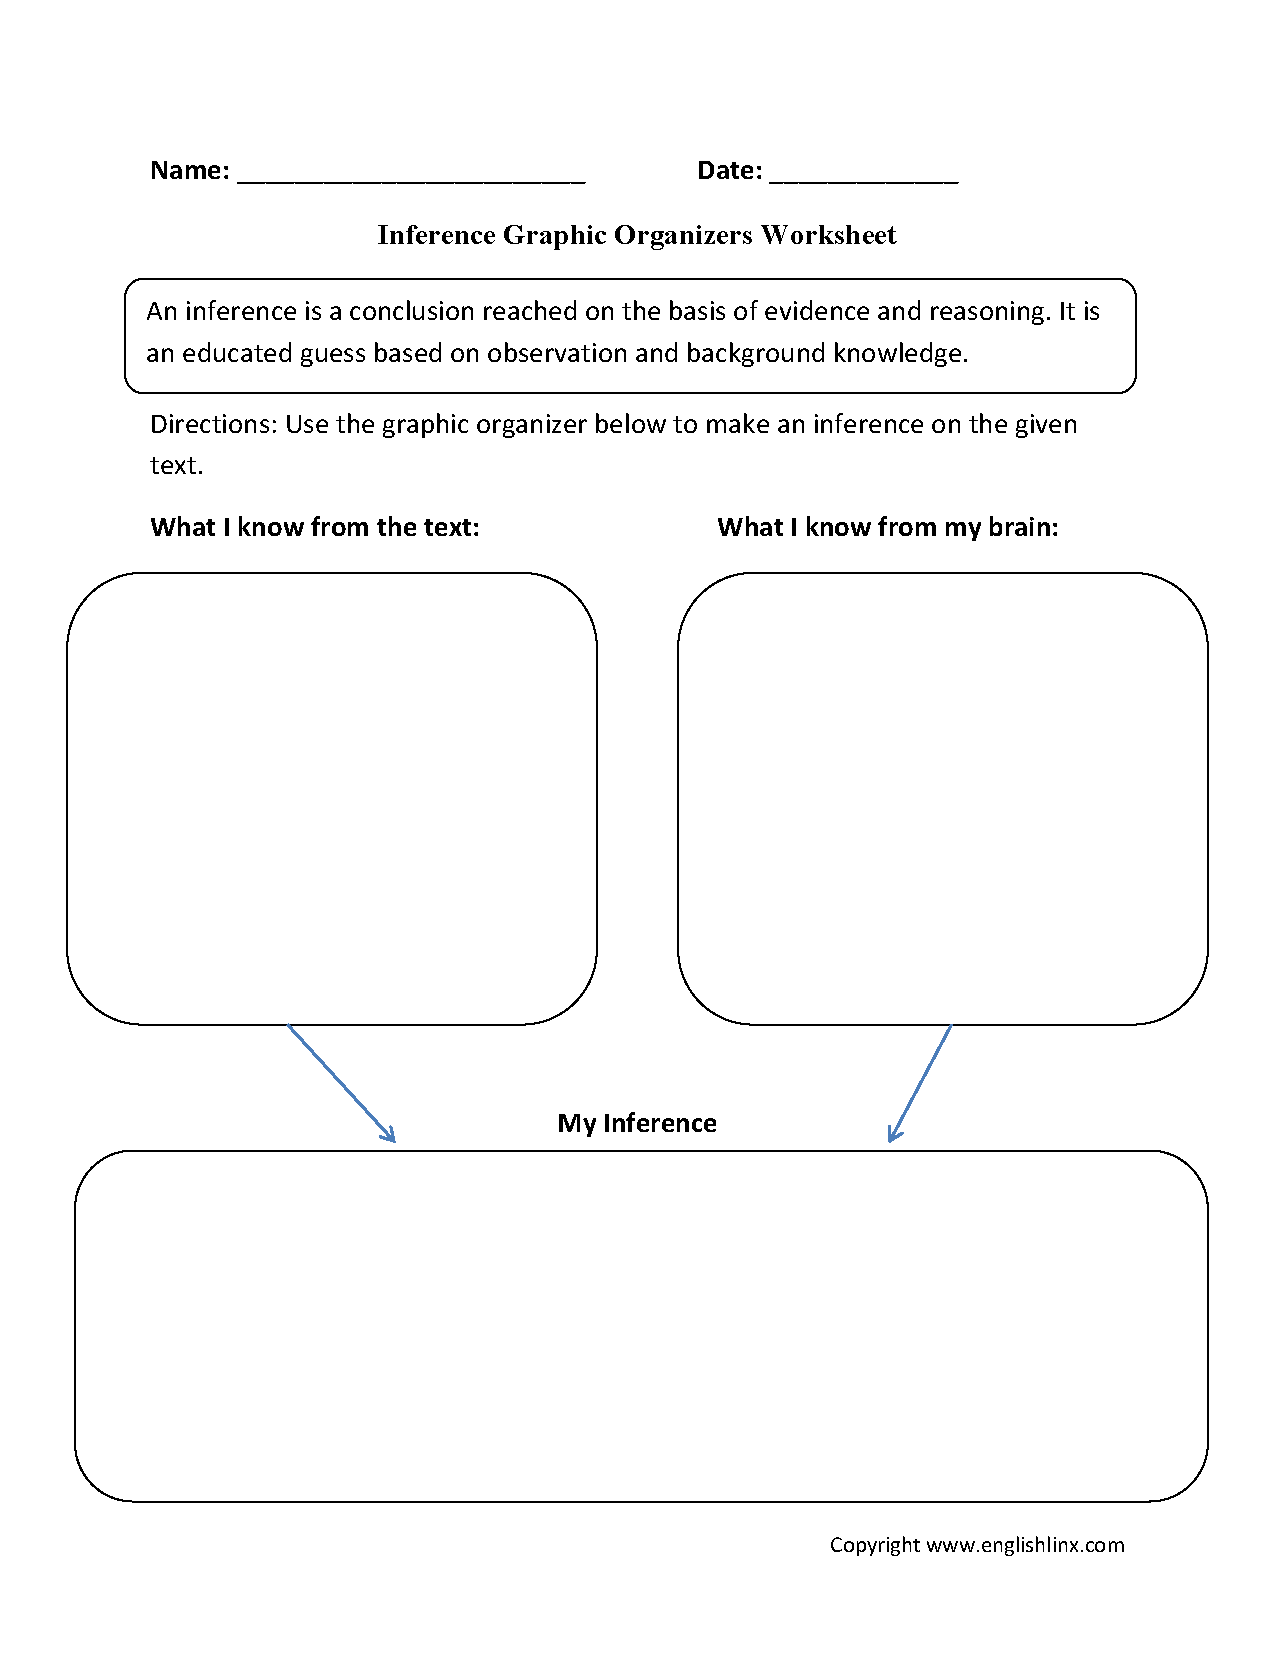 Inference Graphic Organizers Worksheets